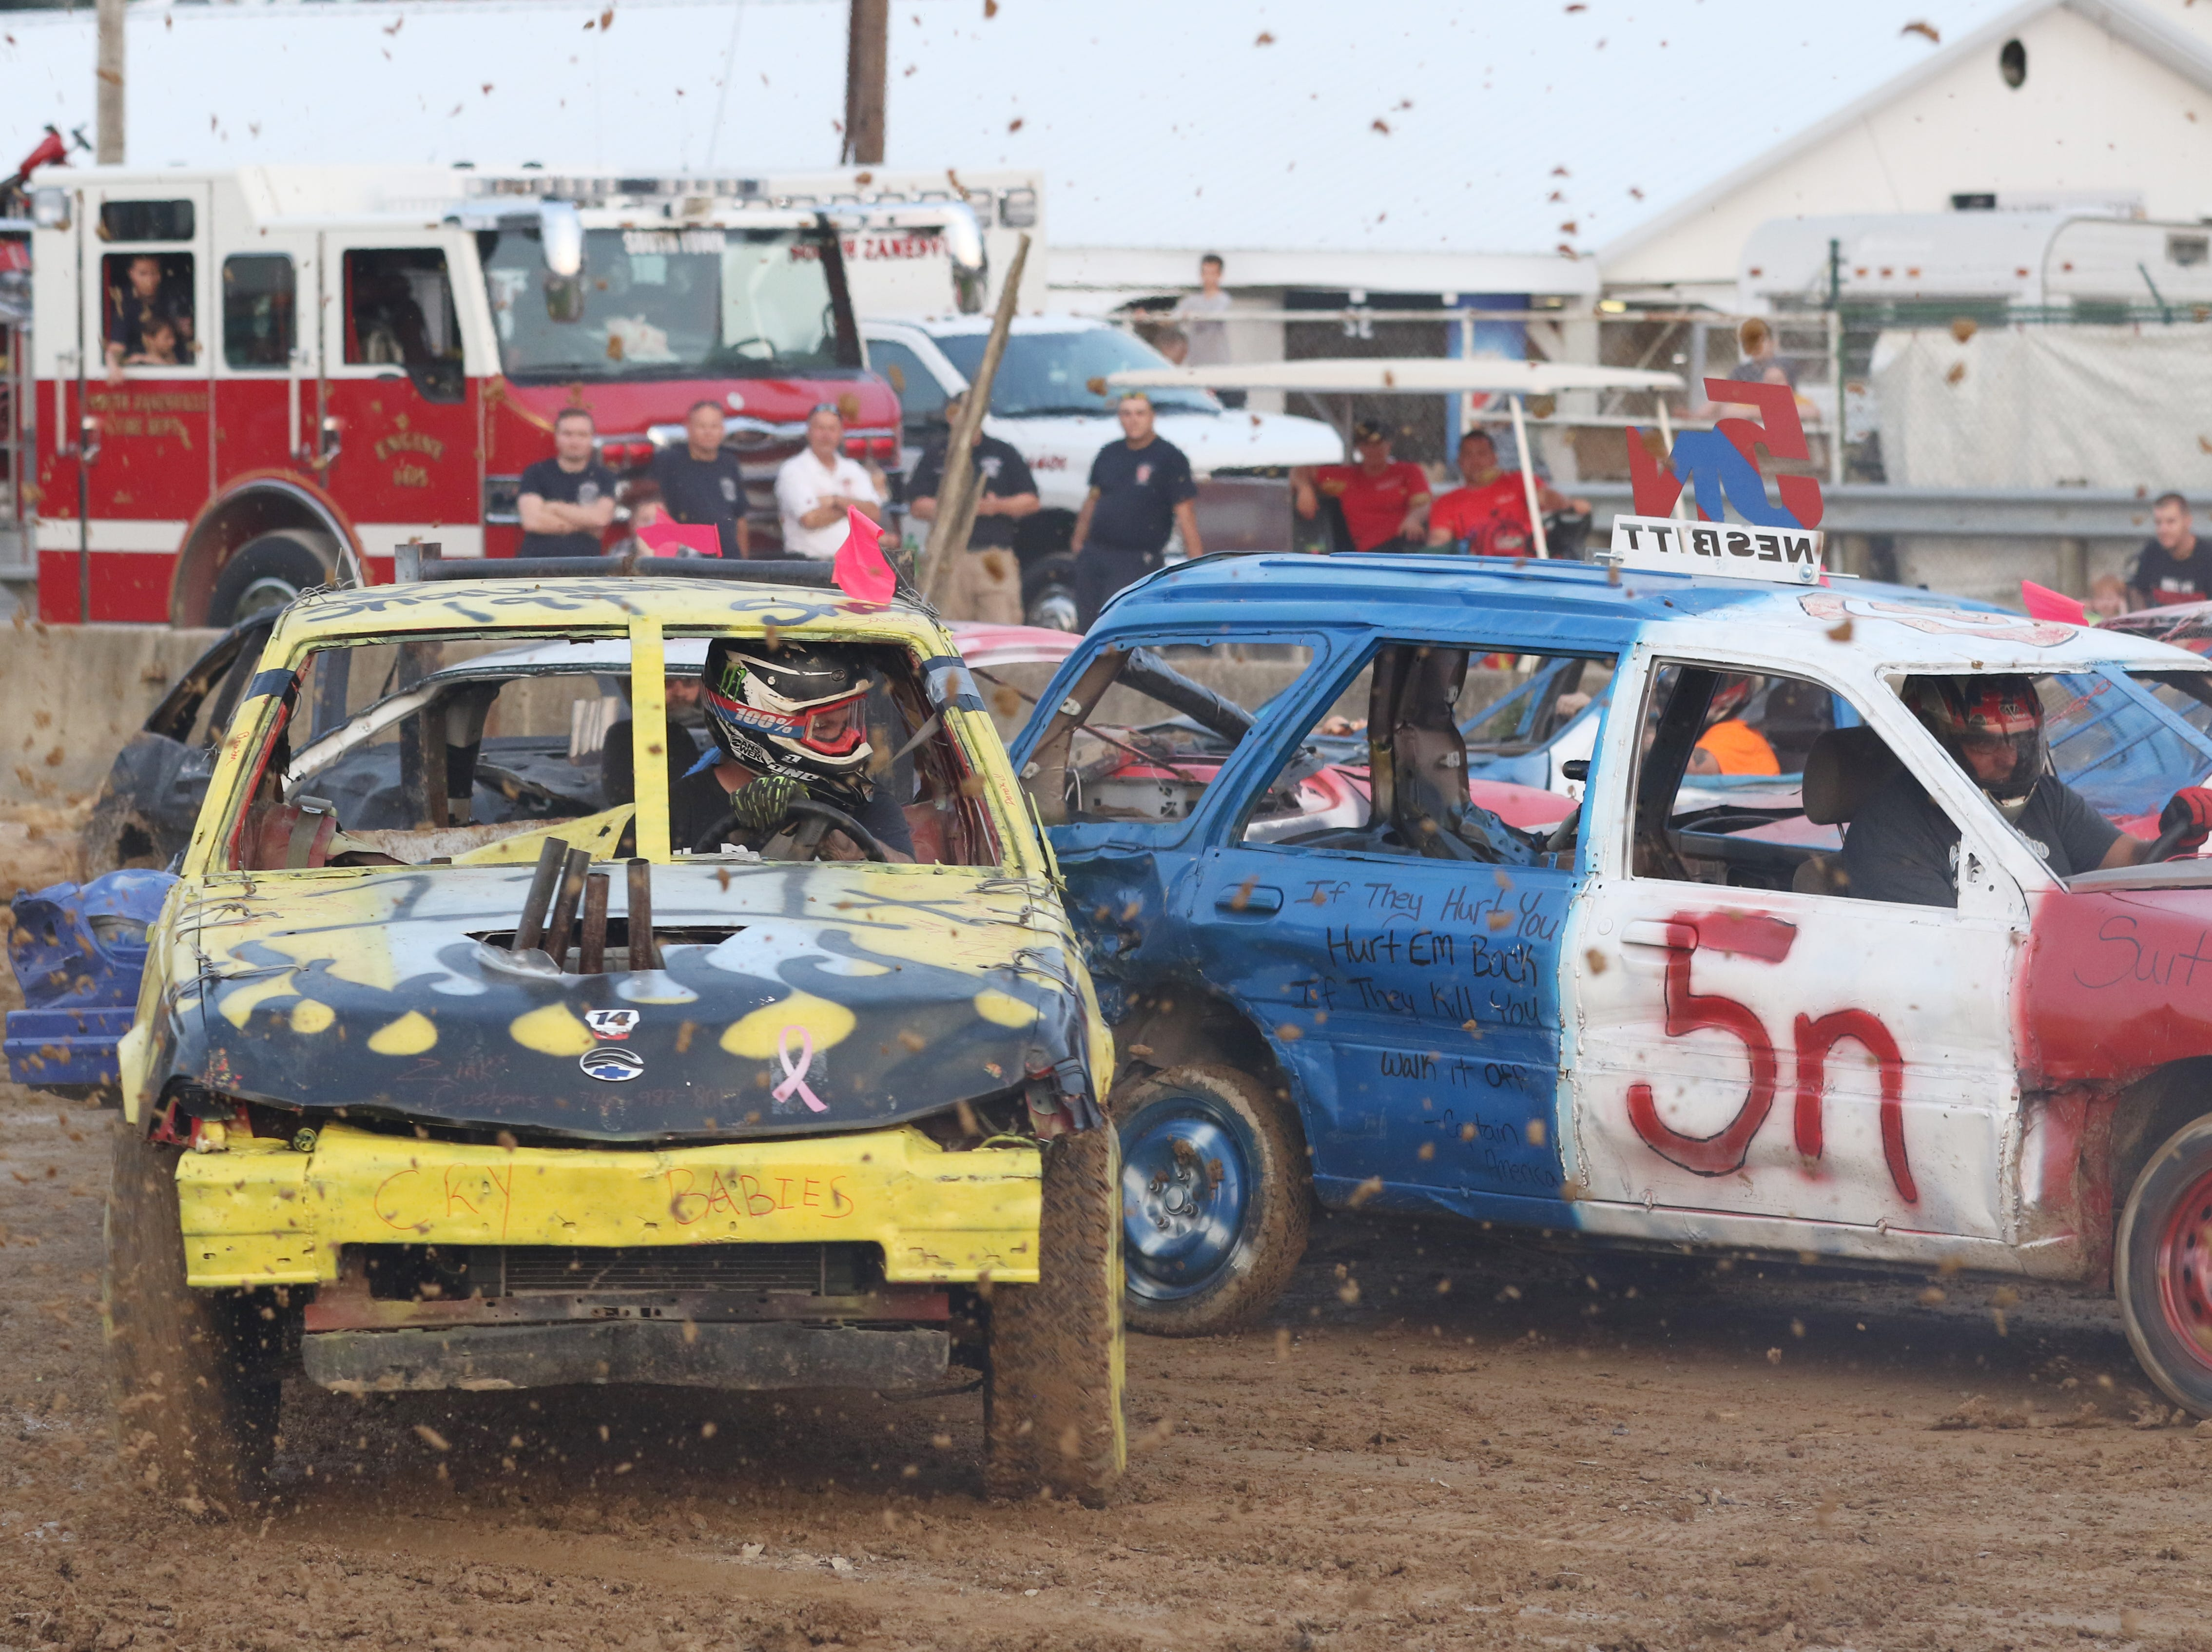 Shawn Savage and Jame Nesbitt in the 5n car collide during the Sarge and Sons Demolition Derby at the Muskingum County Fair on Tuesday.